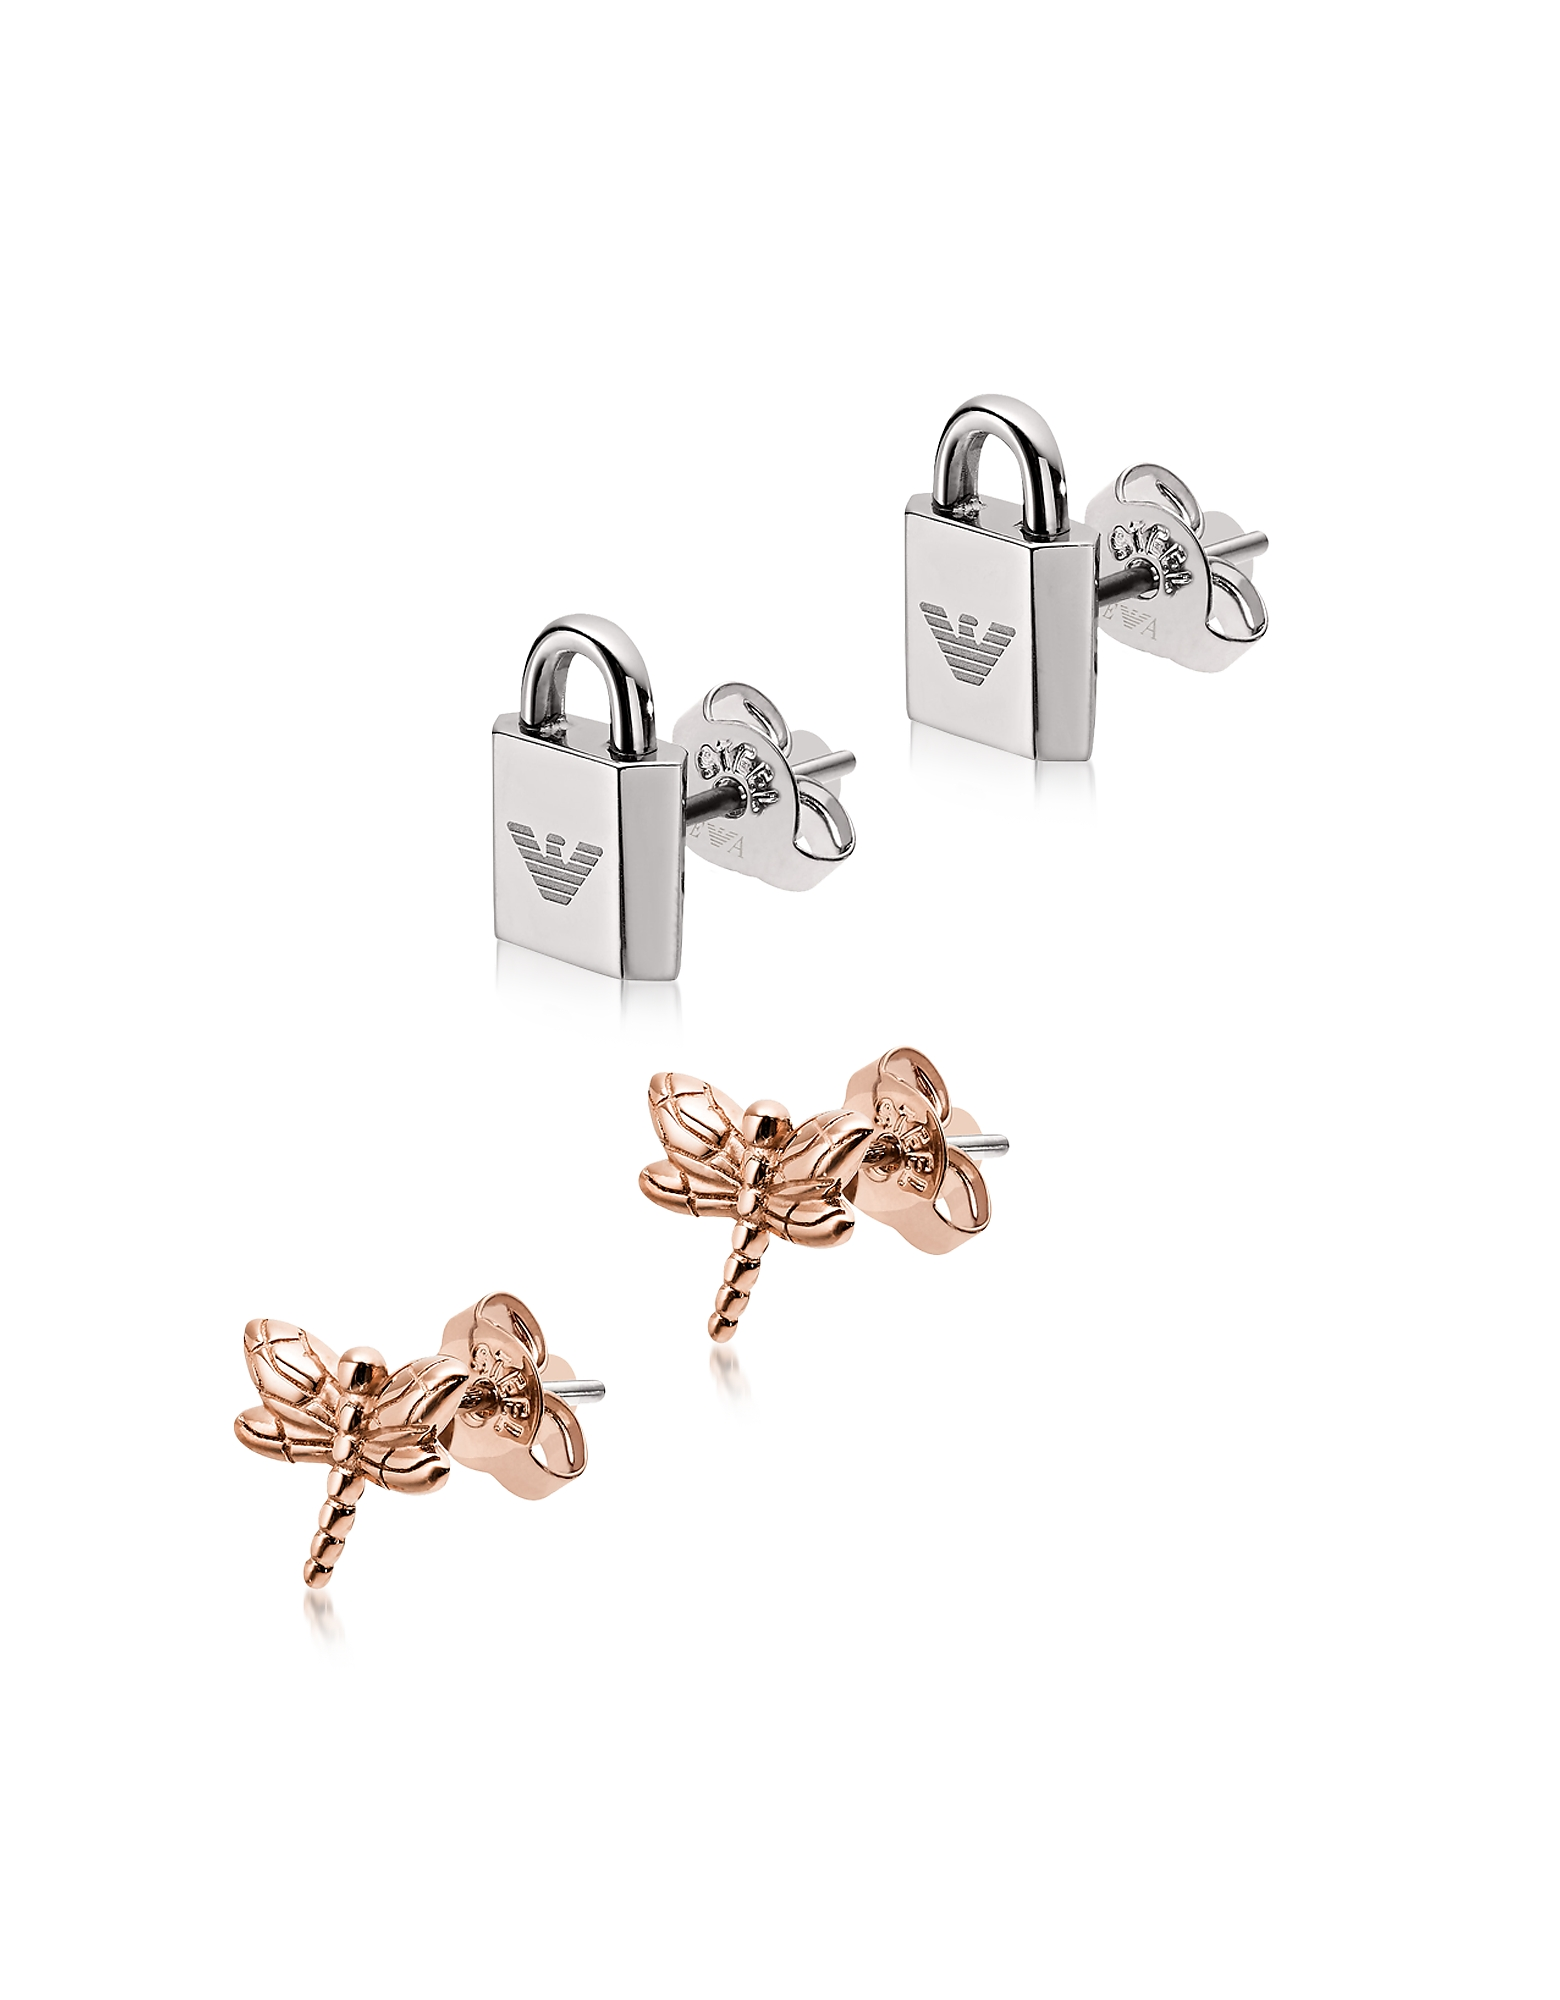 Padlock And Dragonfly Set Women's Earring